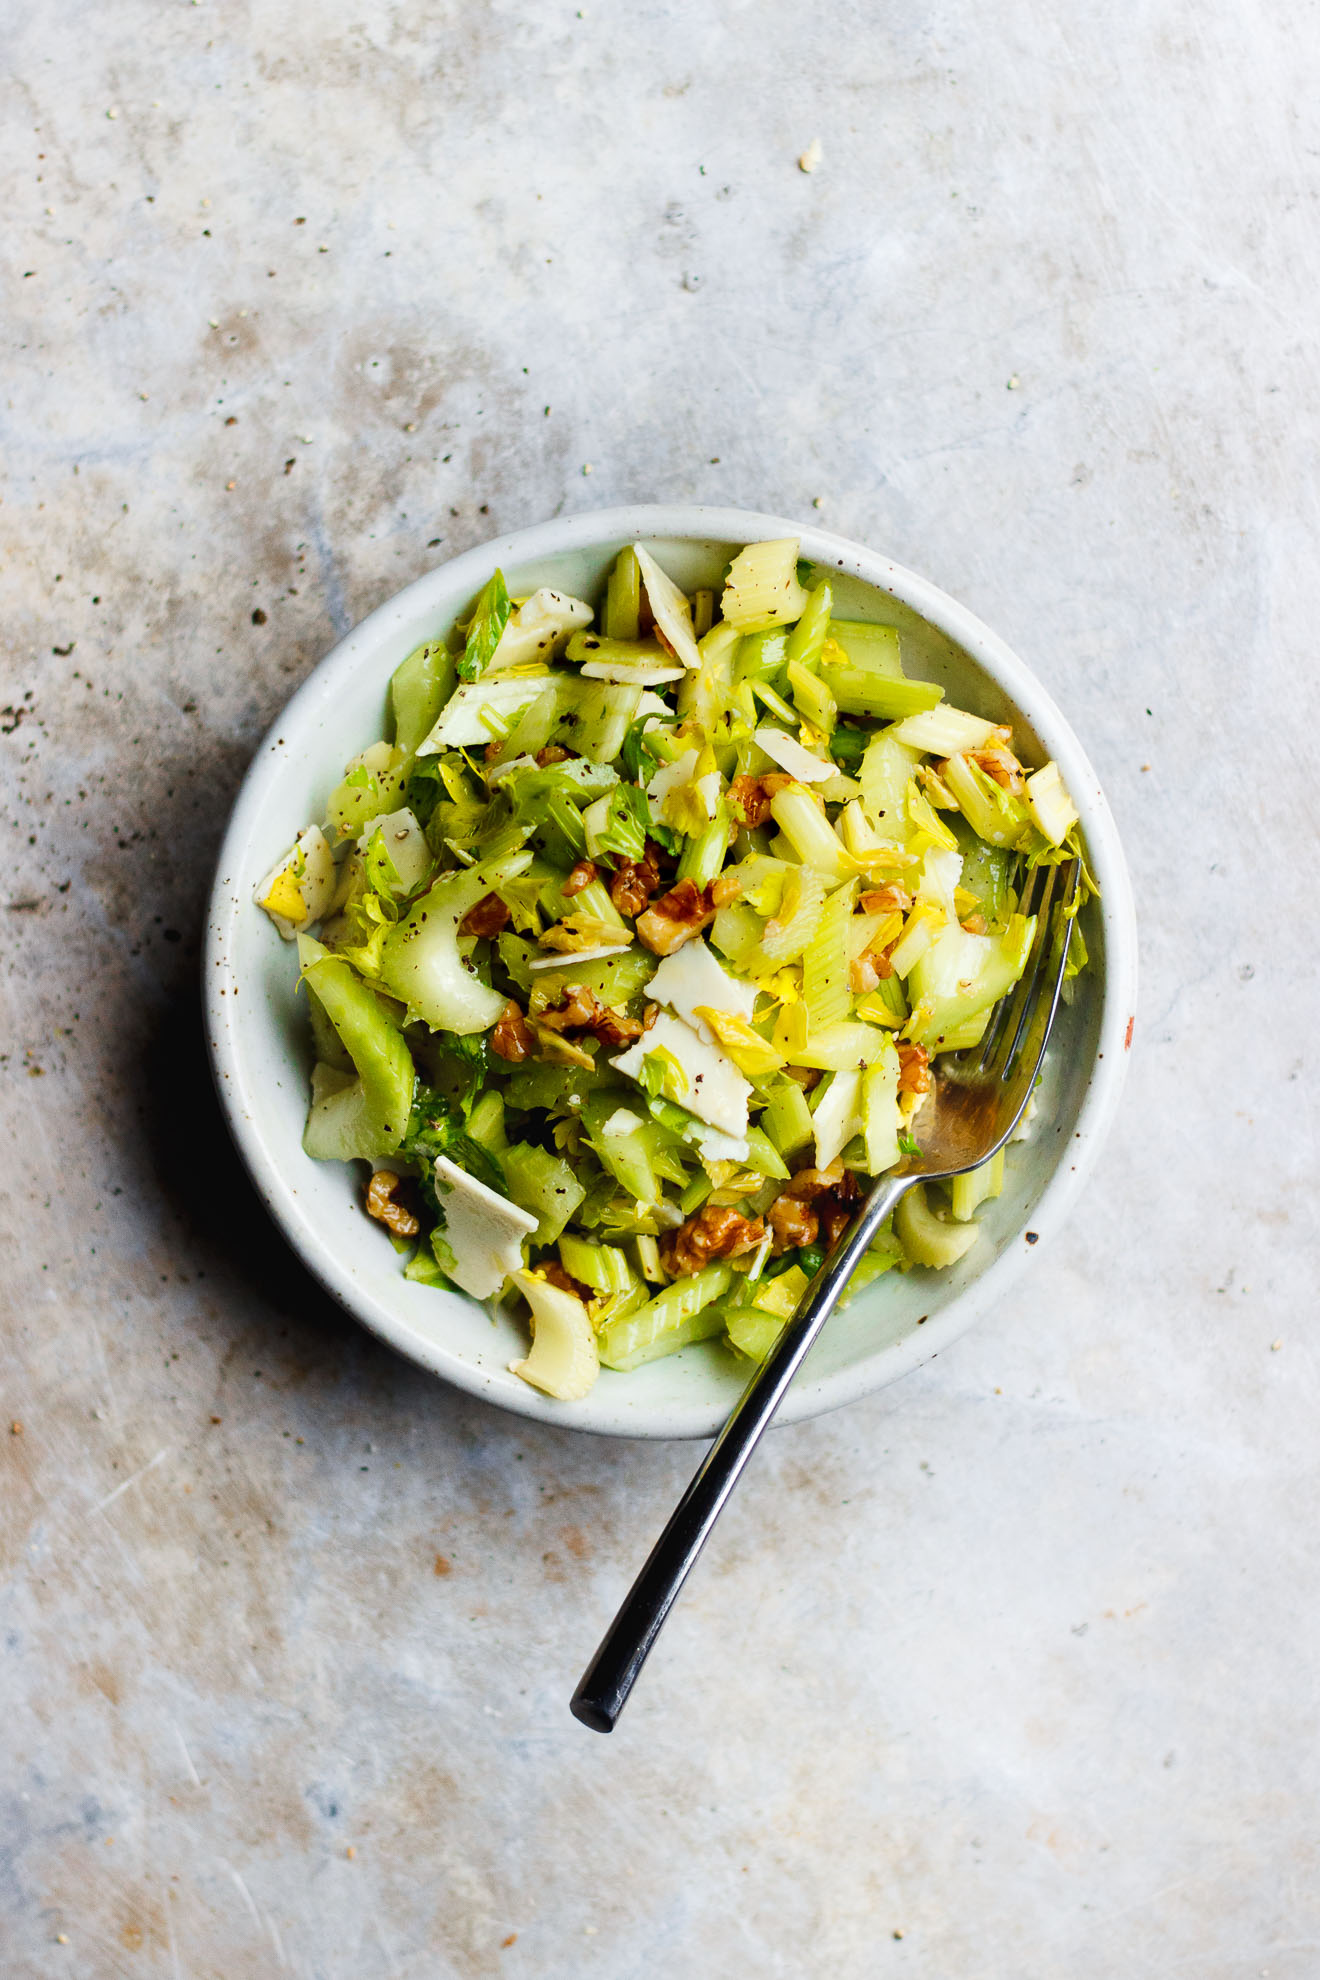 Celery Salad with Parmigiano-Reggiano + Walnuts | A salty, crunchy celery salad with parmigiano-reggiano and walnuts. A classic, three-ingredient celery and parmesan cheese salad.